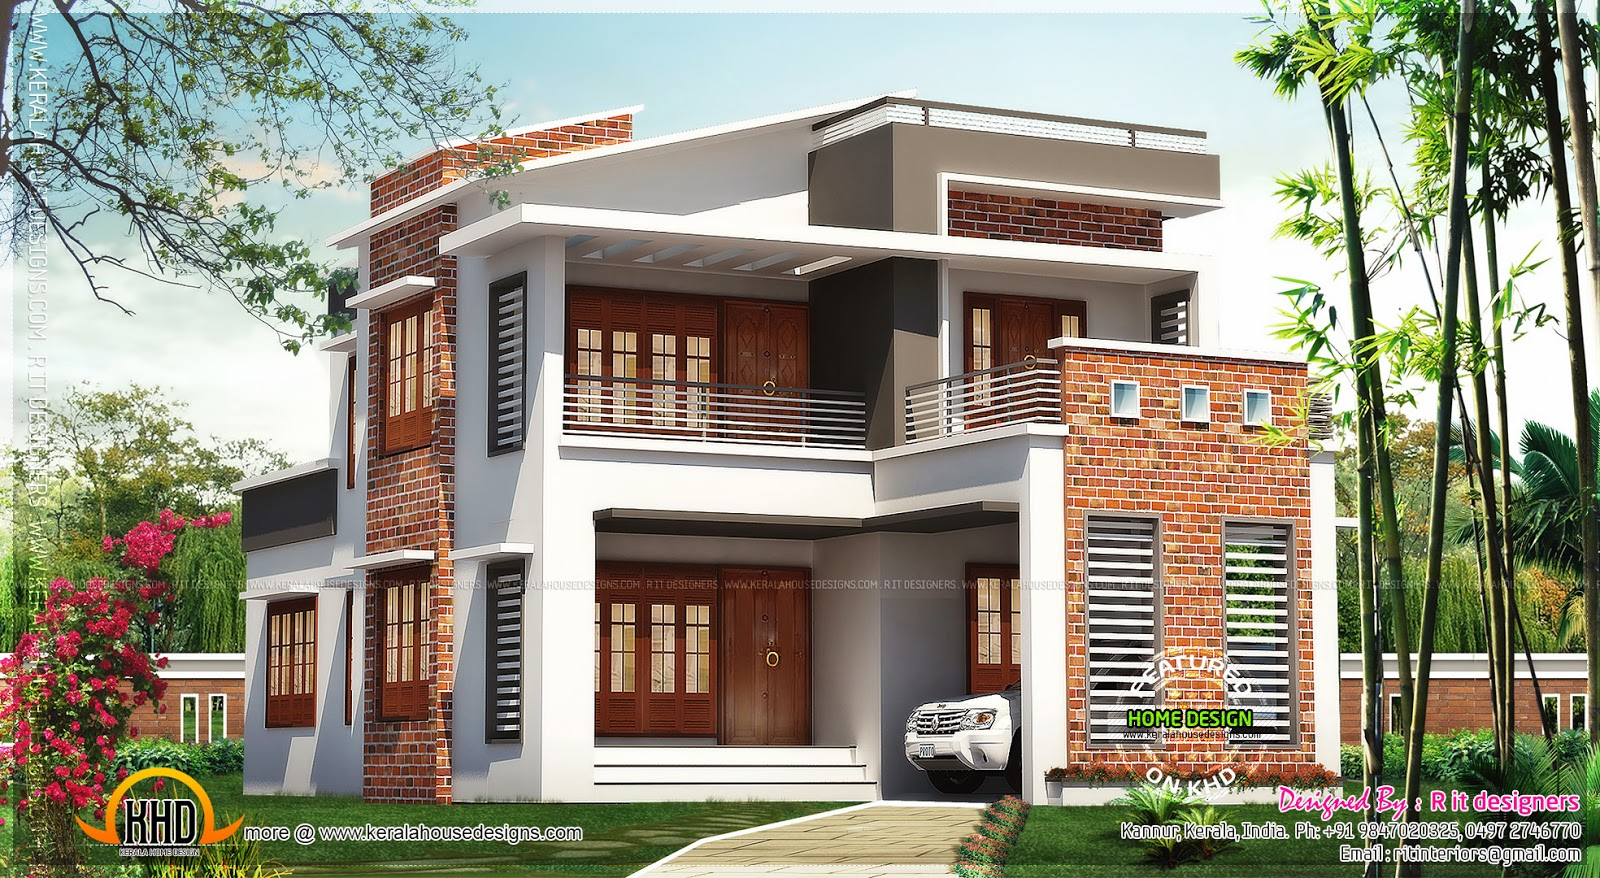 Brick mix house exterior design kerala home design and for House building front design